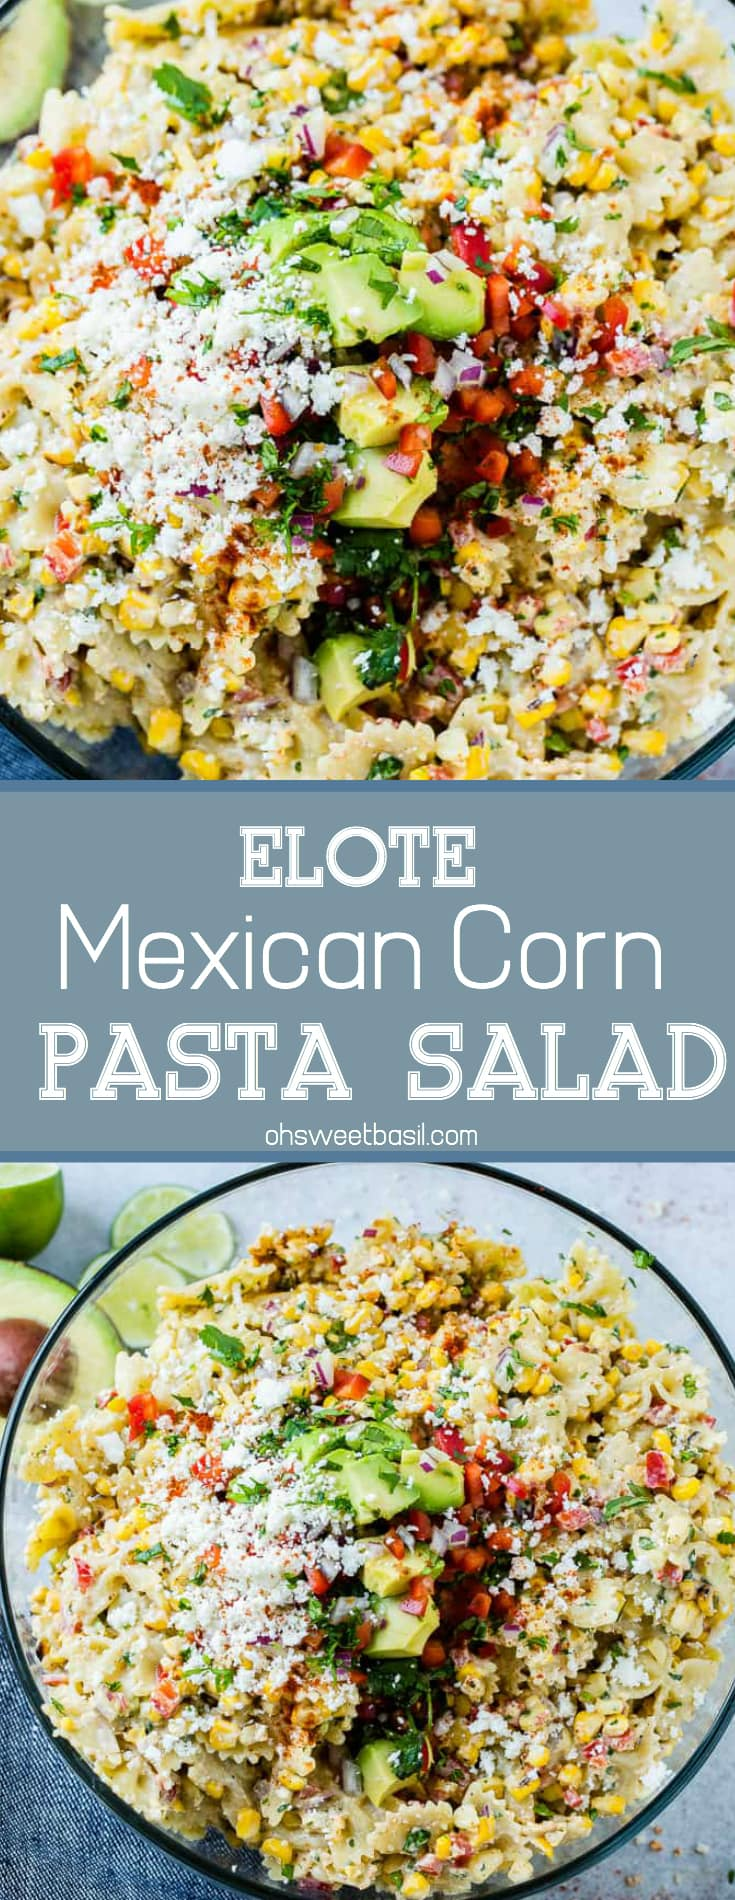 A close up photo of a bow tie pasta salad with avocados, peppers, grilled corn, cilantro, and cotija cheese making up an Elote Mexican Corn Pasta Salad